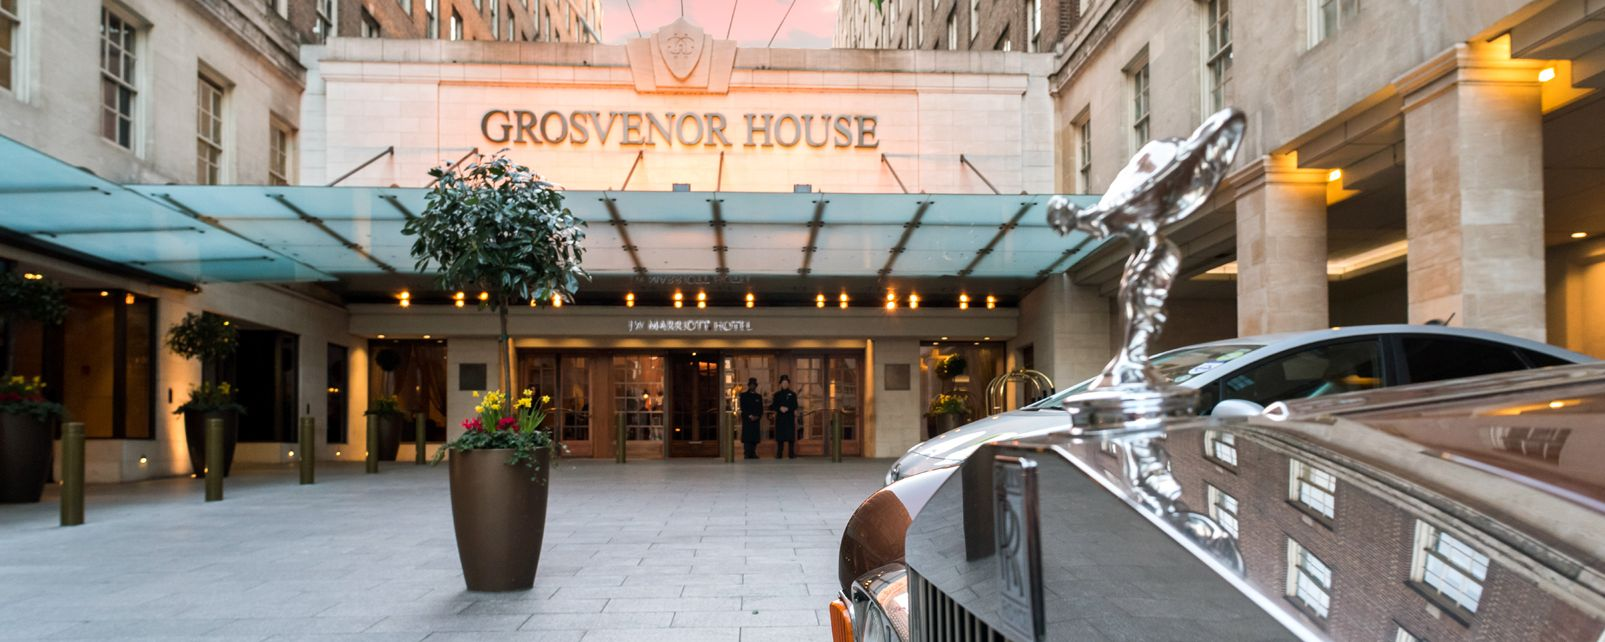 Hotel Grosvenor House A JW Marriott Hotel